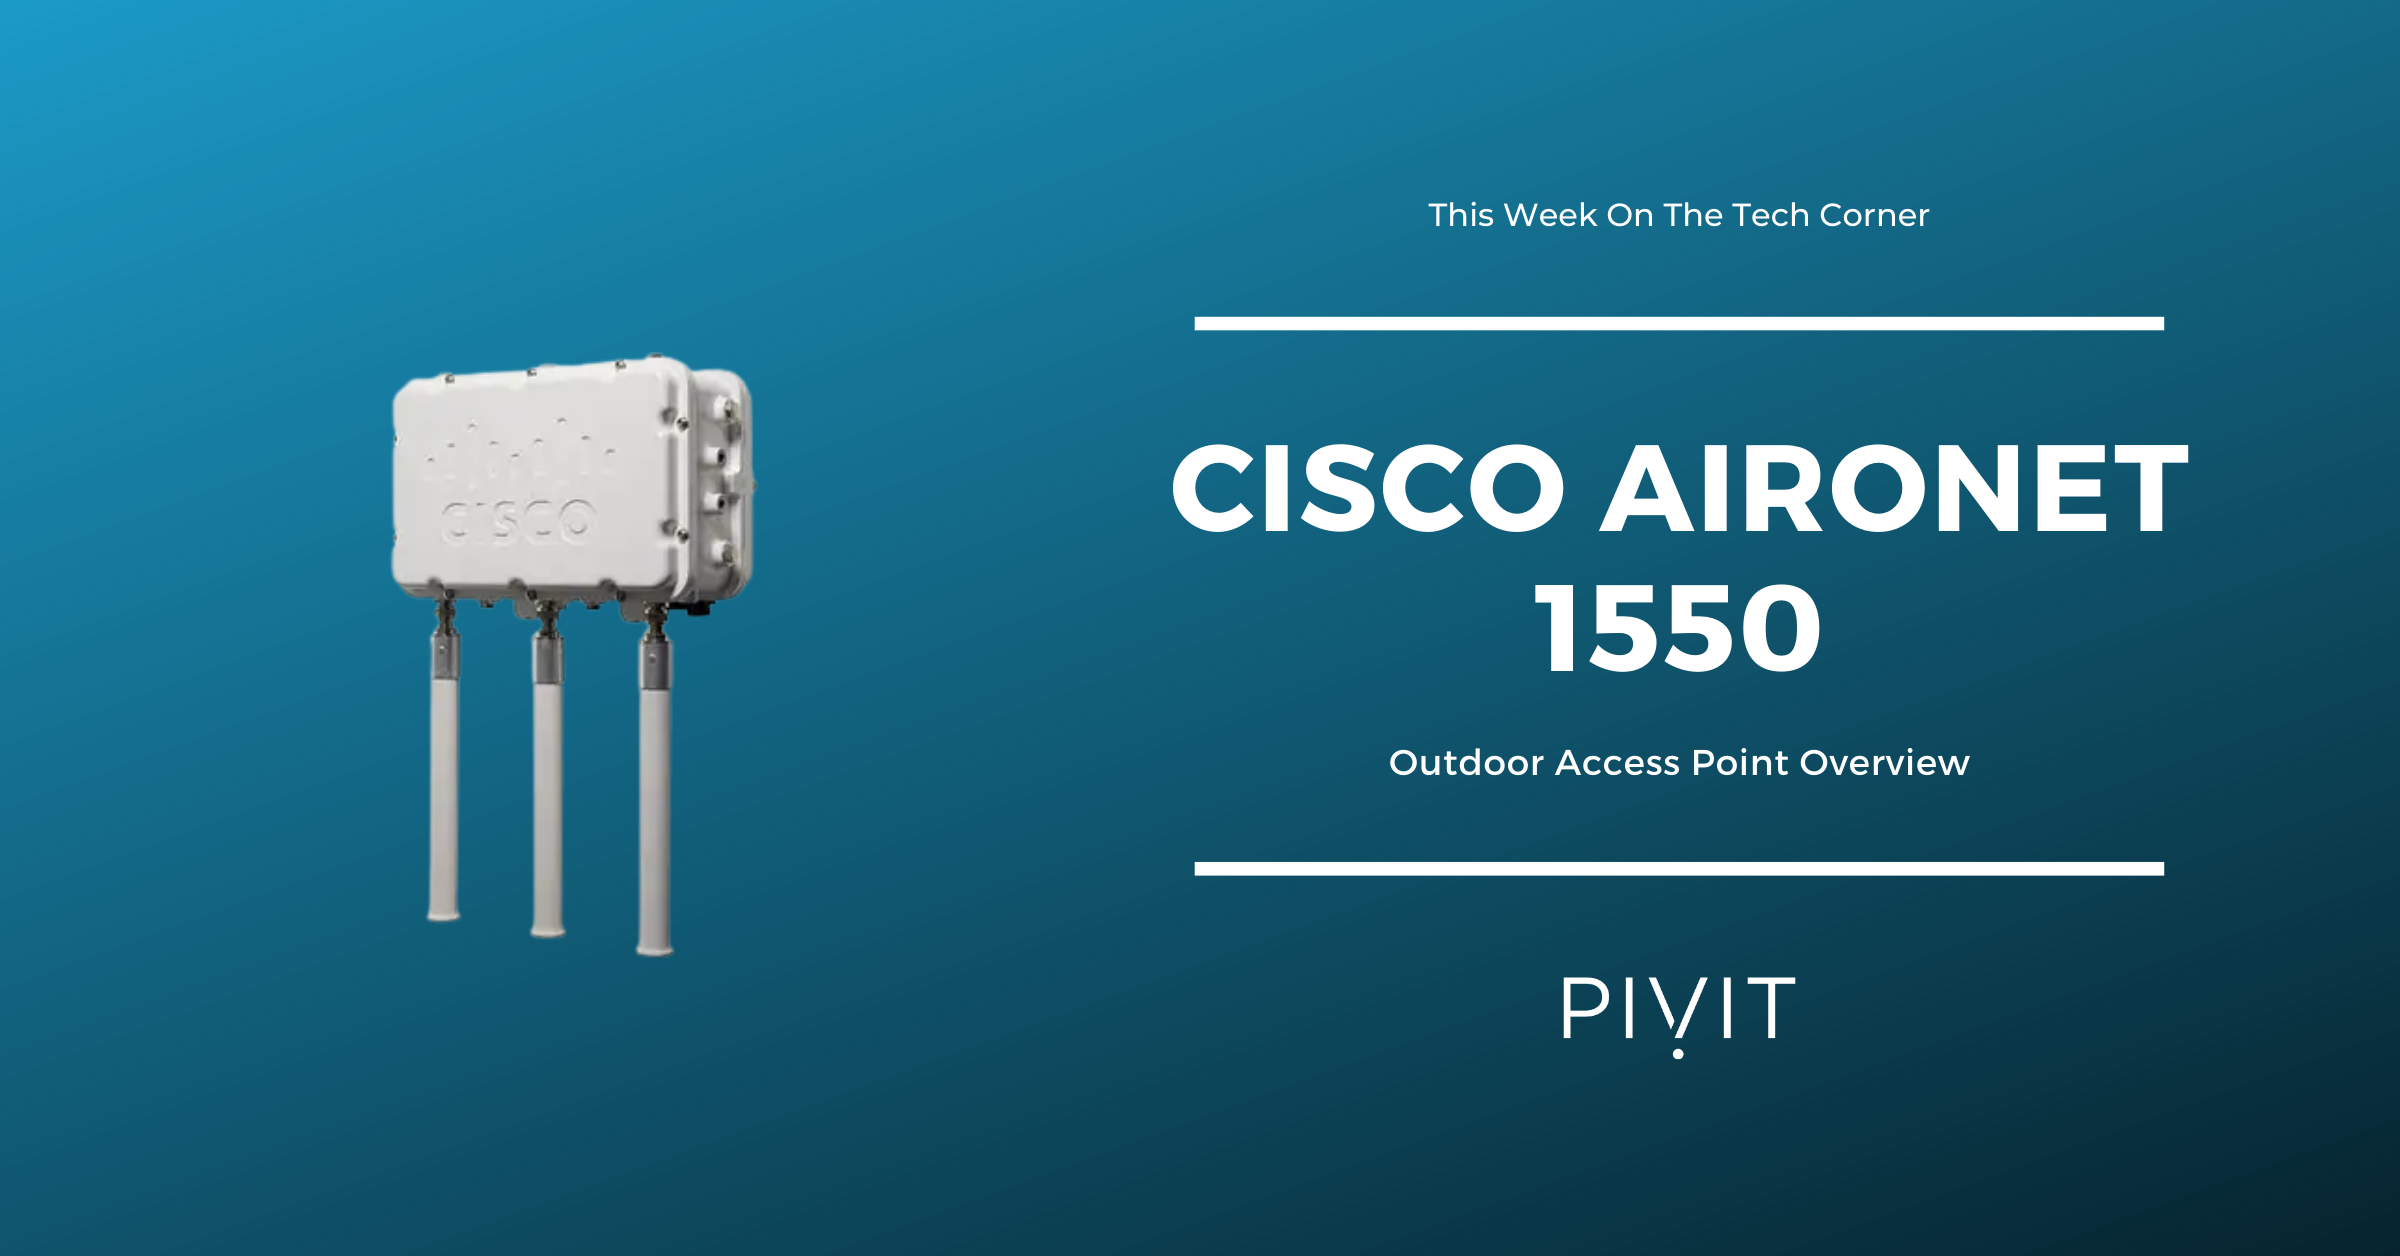 5 Attributes to Prove the Cisco Aironet 1550 has a Spot in Your Network